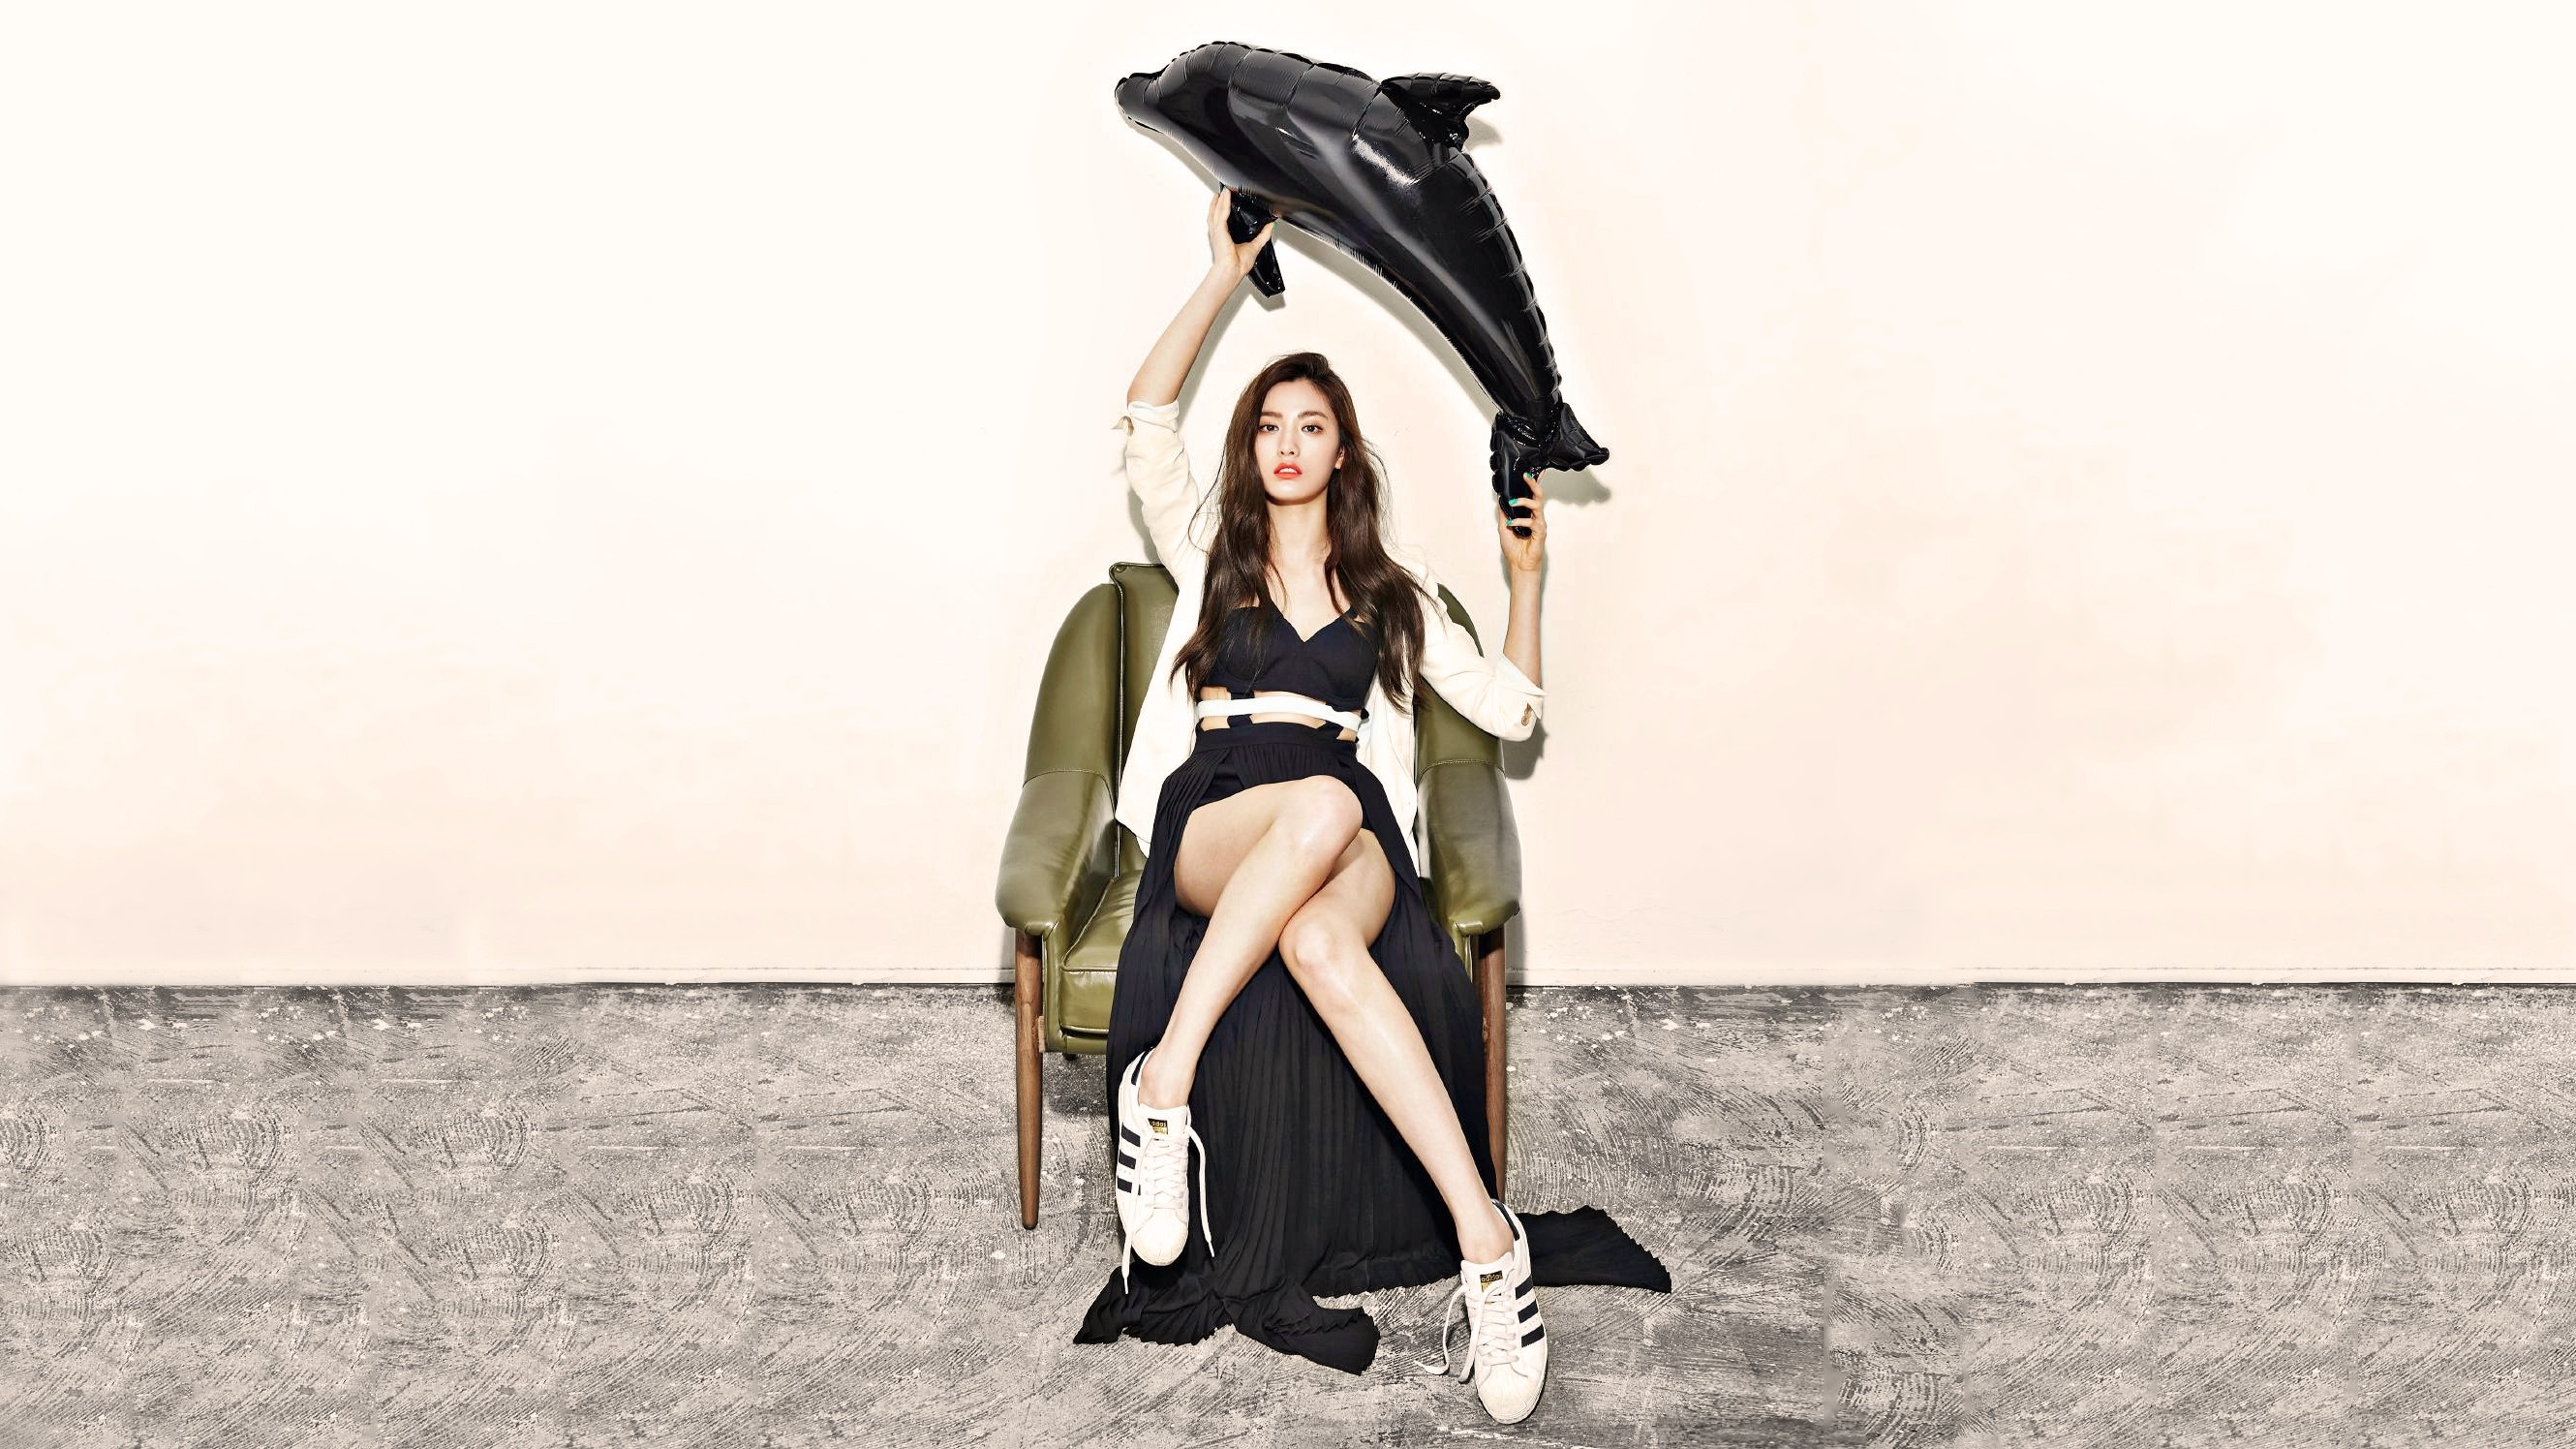 People 2660x1496 K-pop Nana After School Orange Caramel legs Korean women chair sitting model